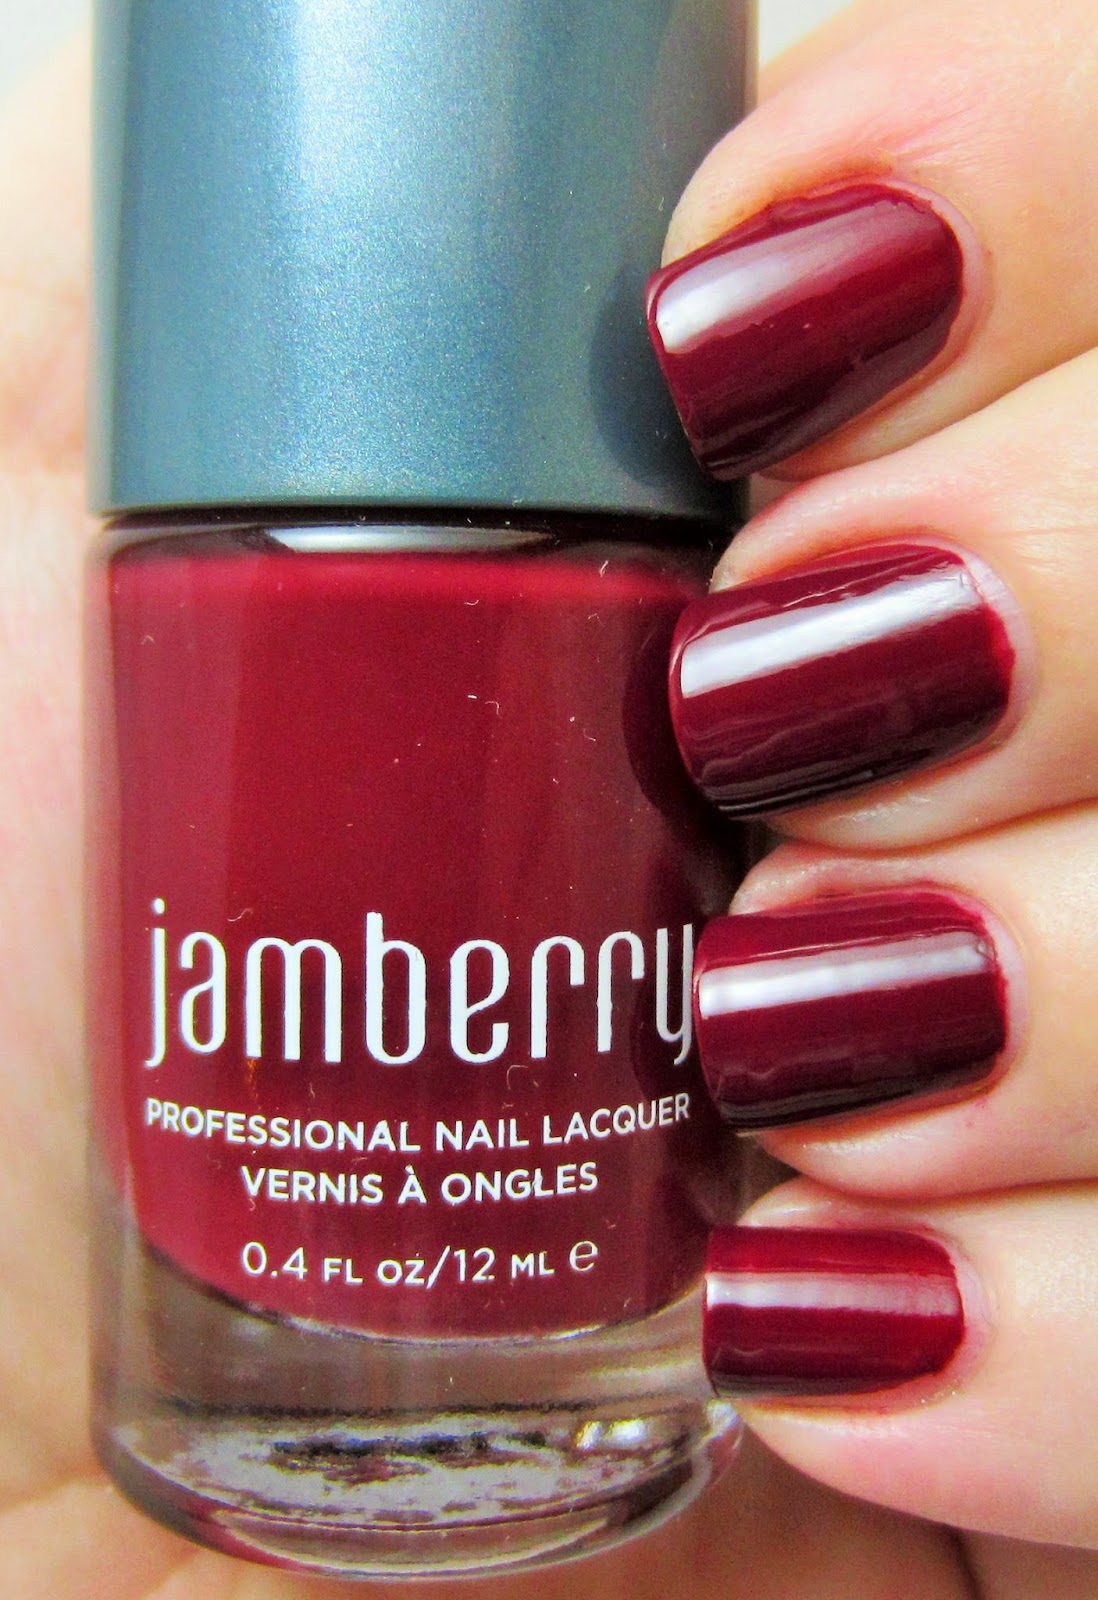 Polished with Pizzazz: Jamberry Nail Lacquer